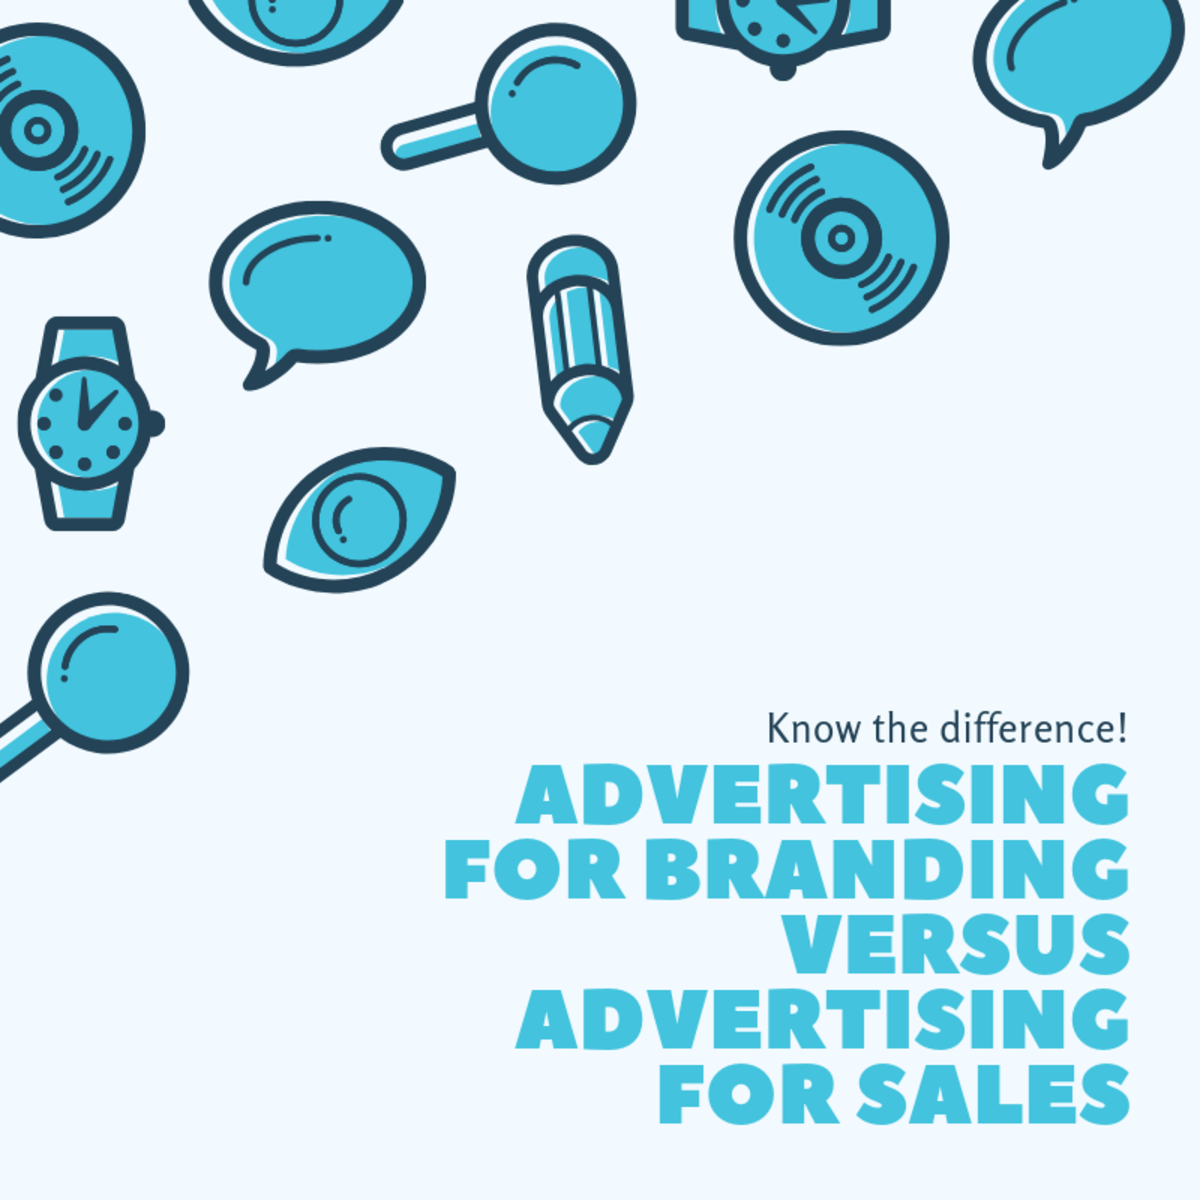 advertising-for-branding-versus-advertising-for-sales